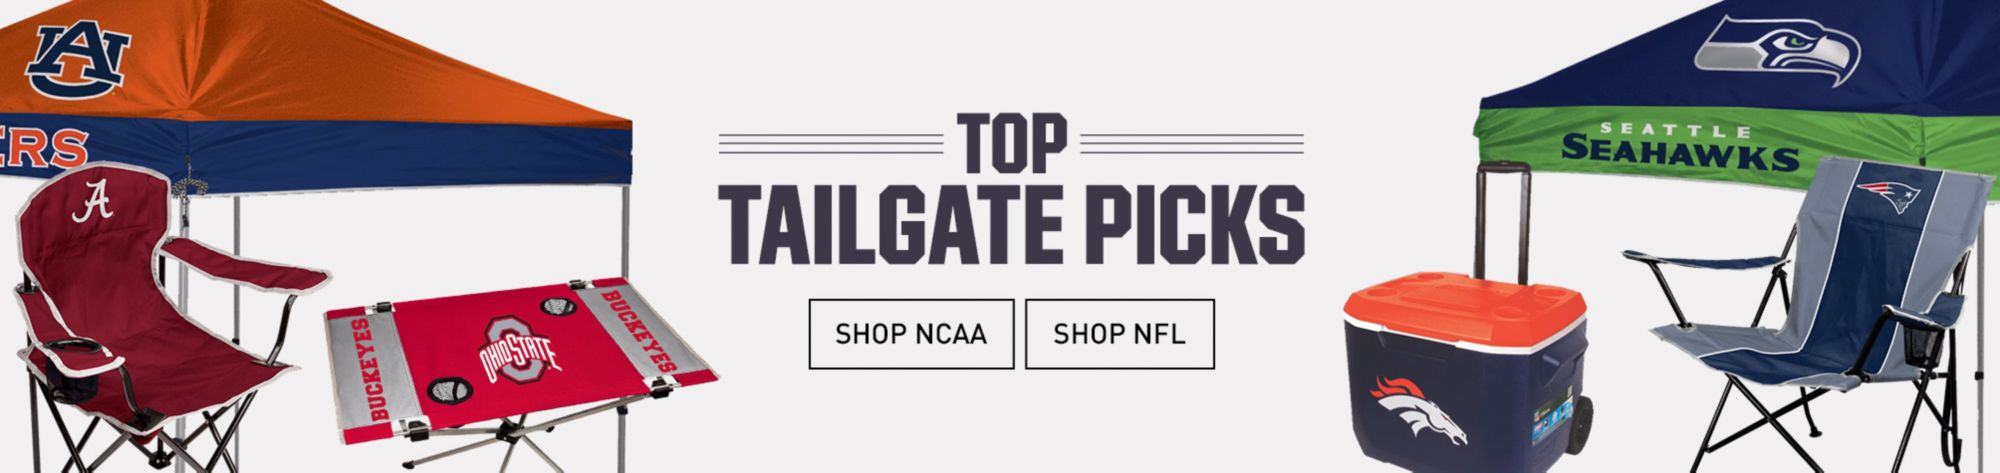 Shop Top Tailgate Picks